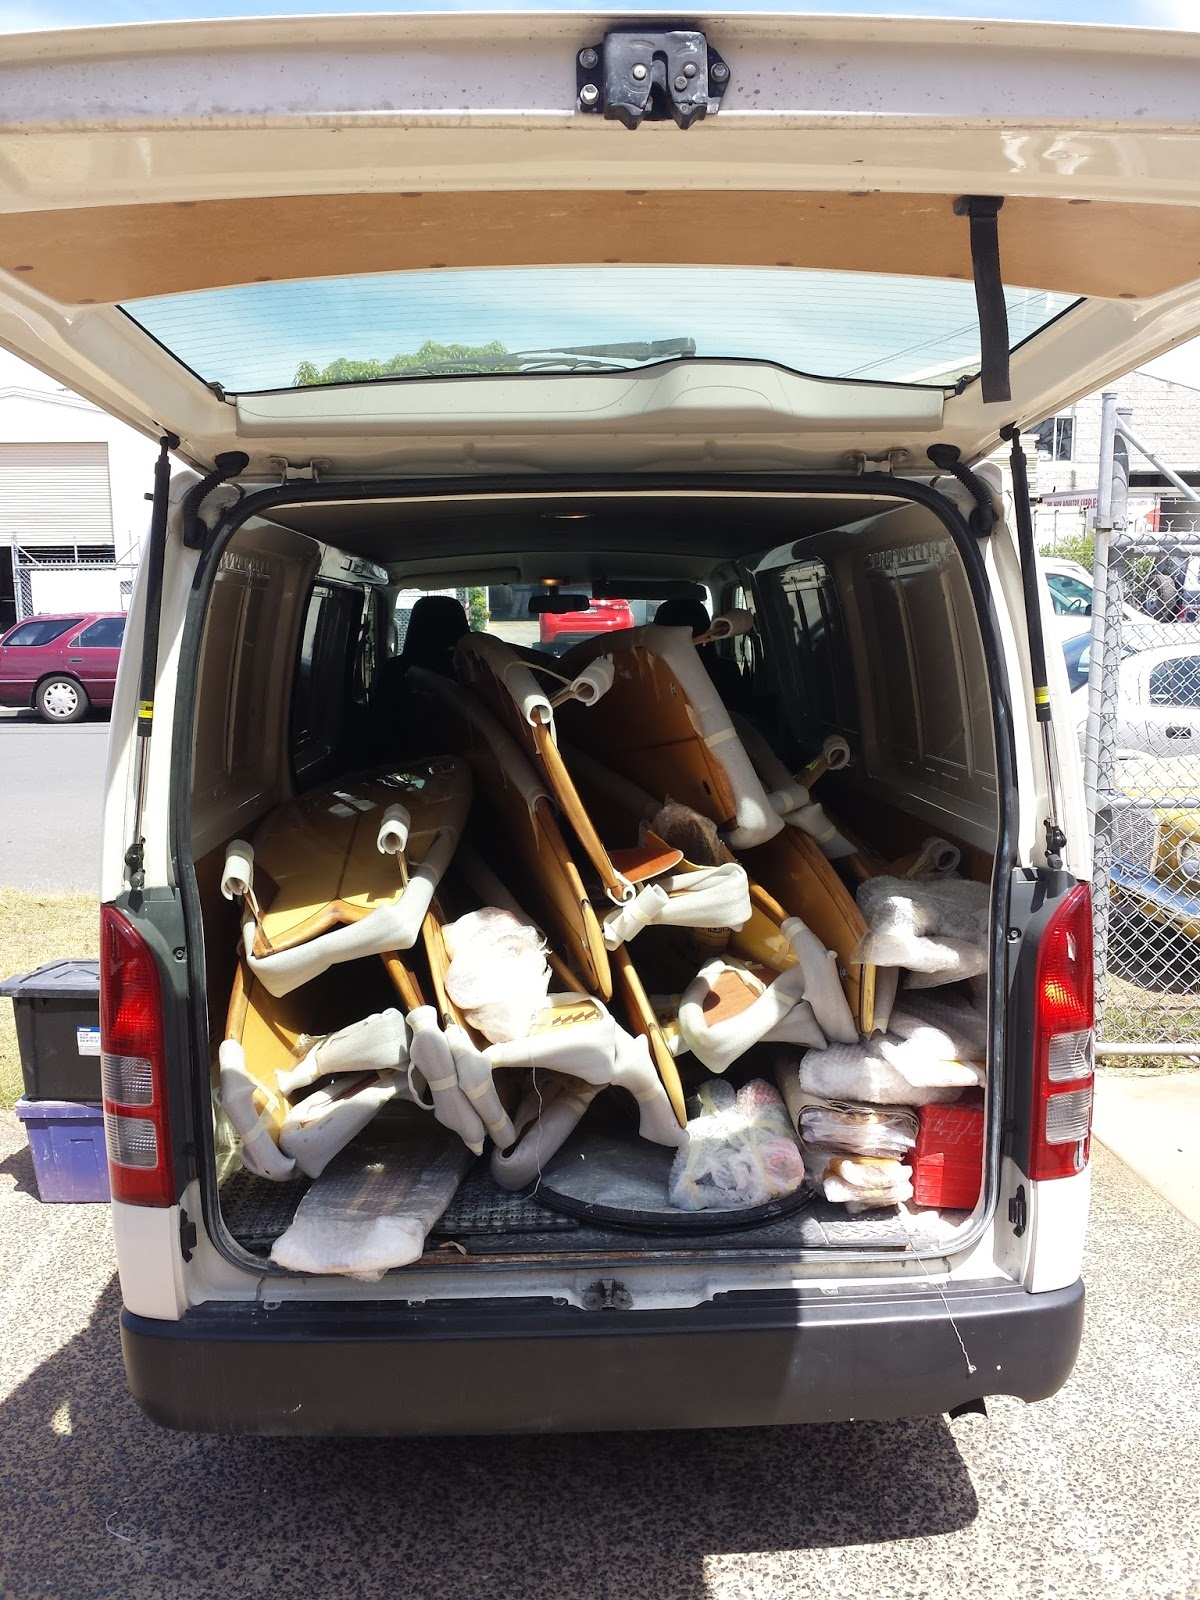 01-03-2016-australia-siebert-surfboards-04